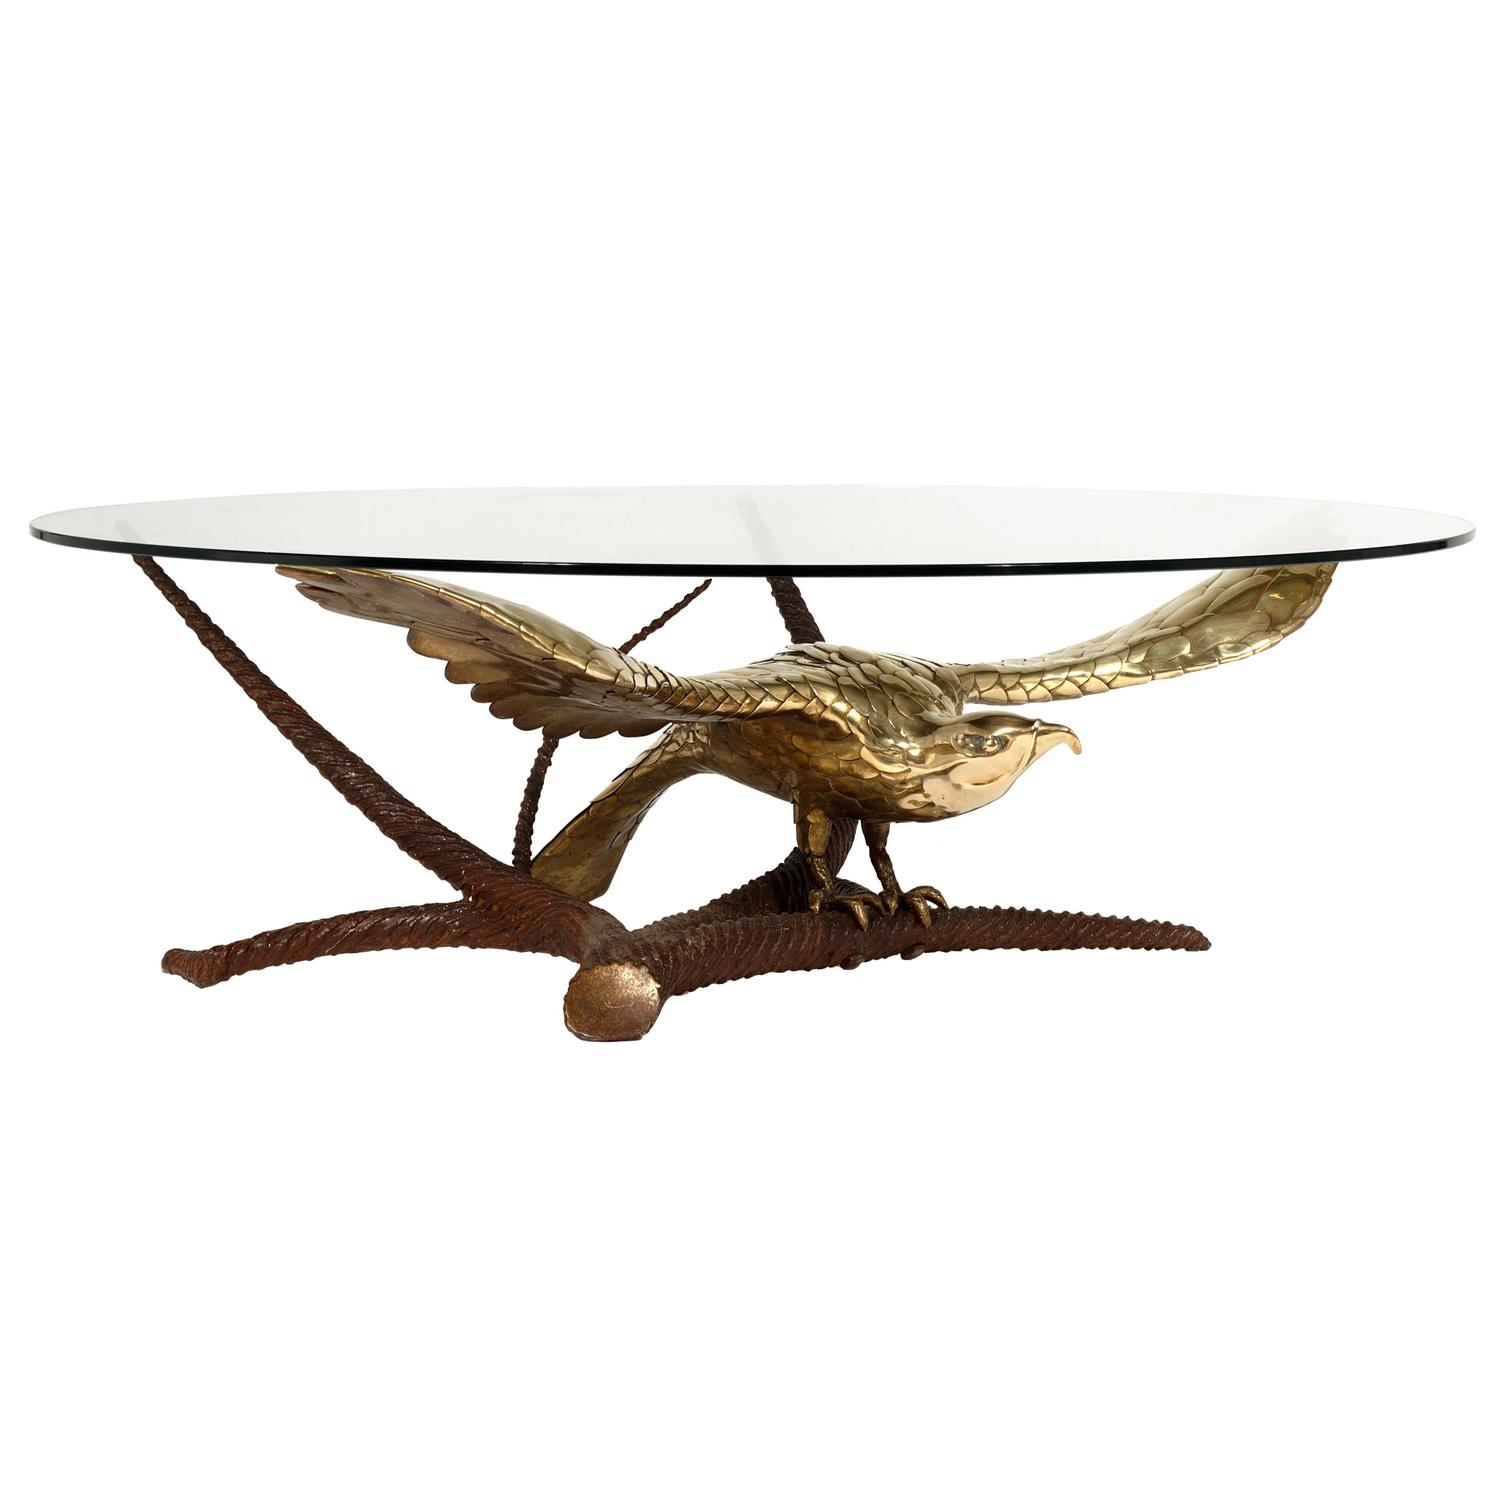 Eagle Coffee Table by A Chervet circa 1970 For Sale at 1stdibs